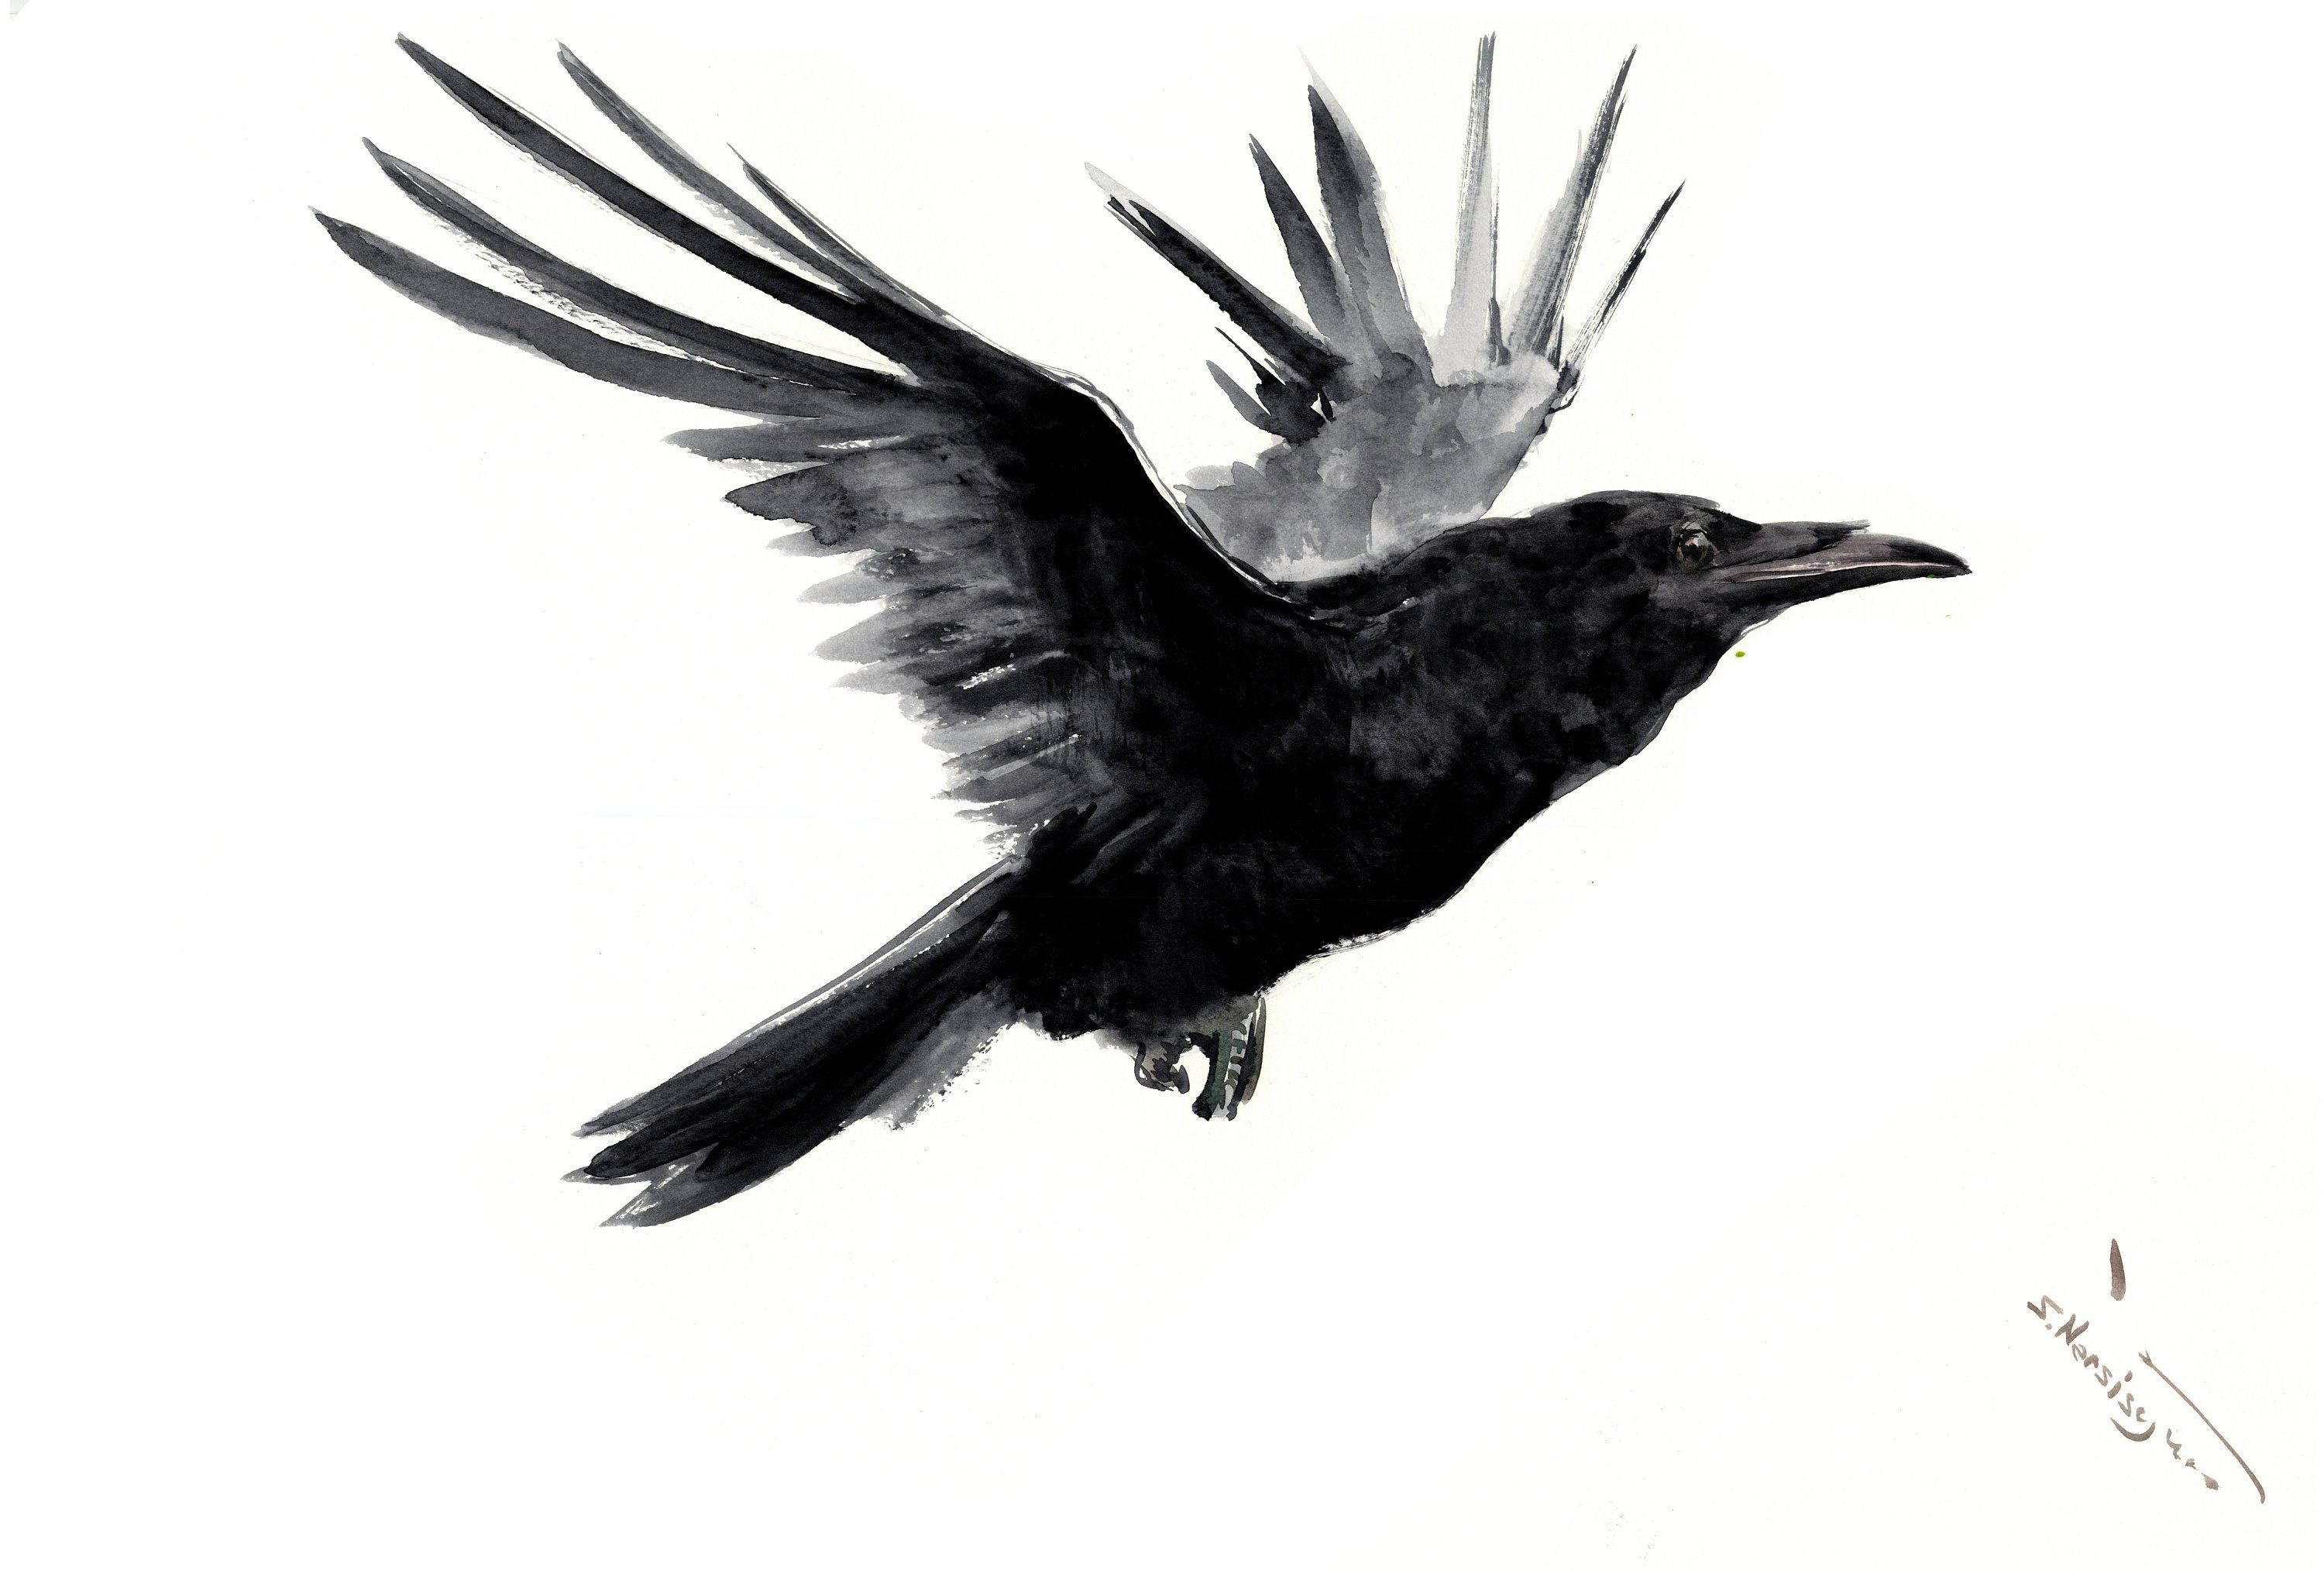 3000x2027 flying raven artwork black and white art raven, original